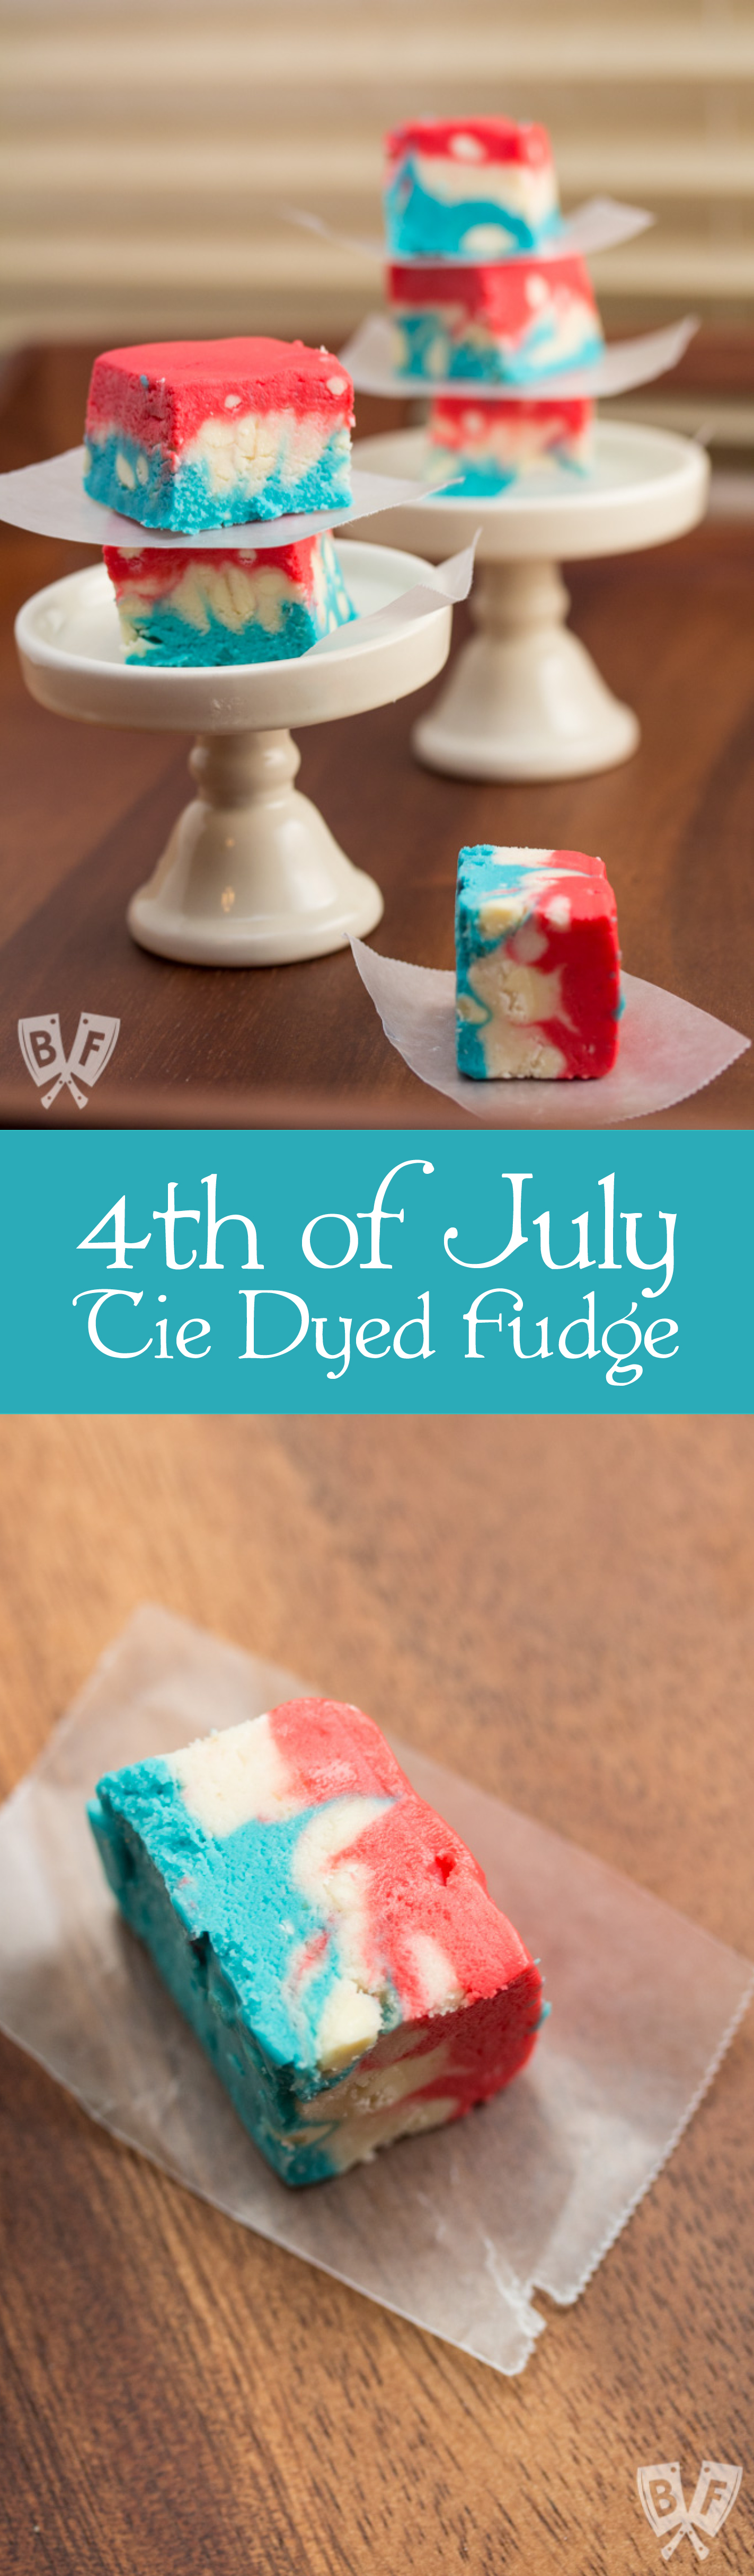 4th of July Tie Dyed Fudge